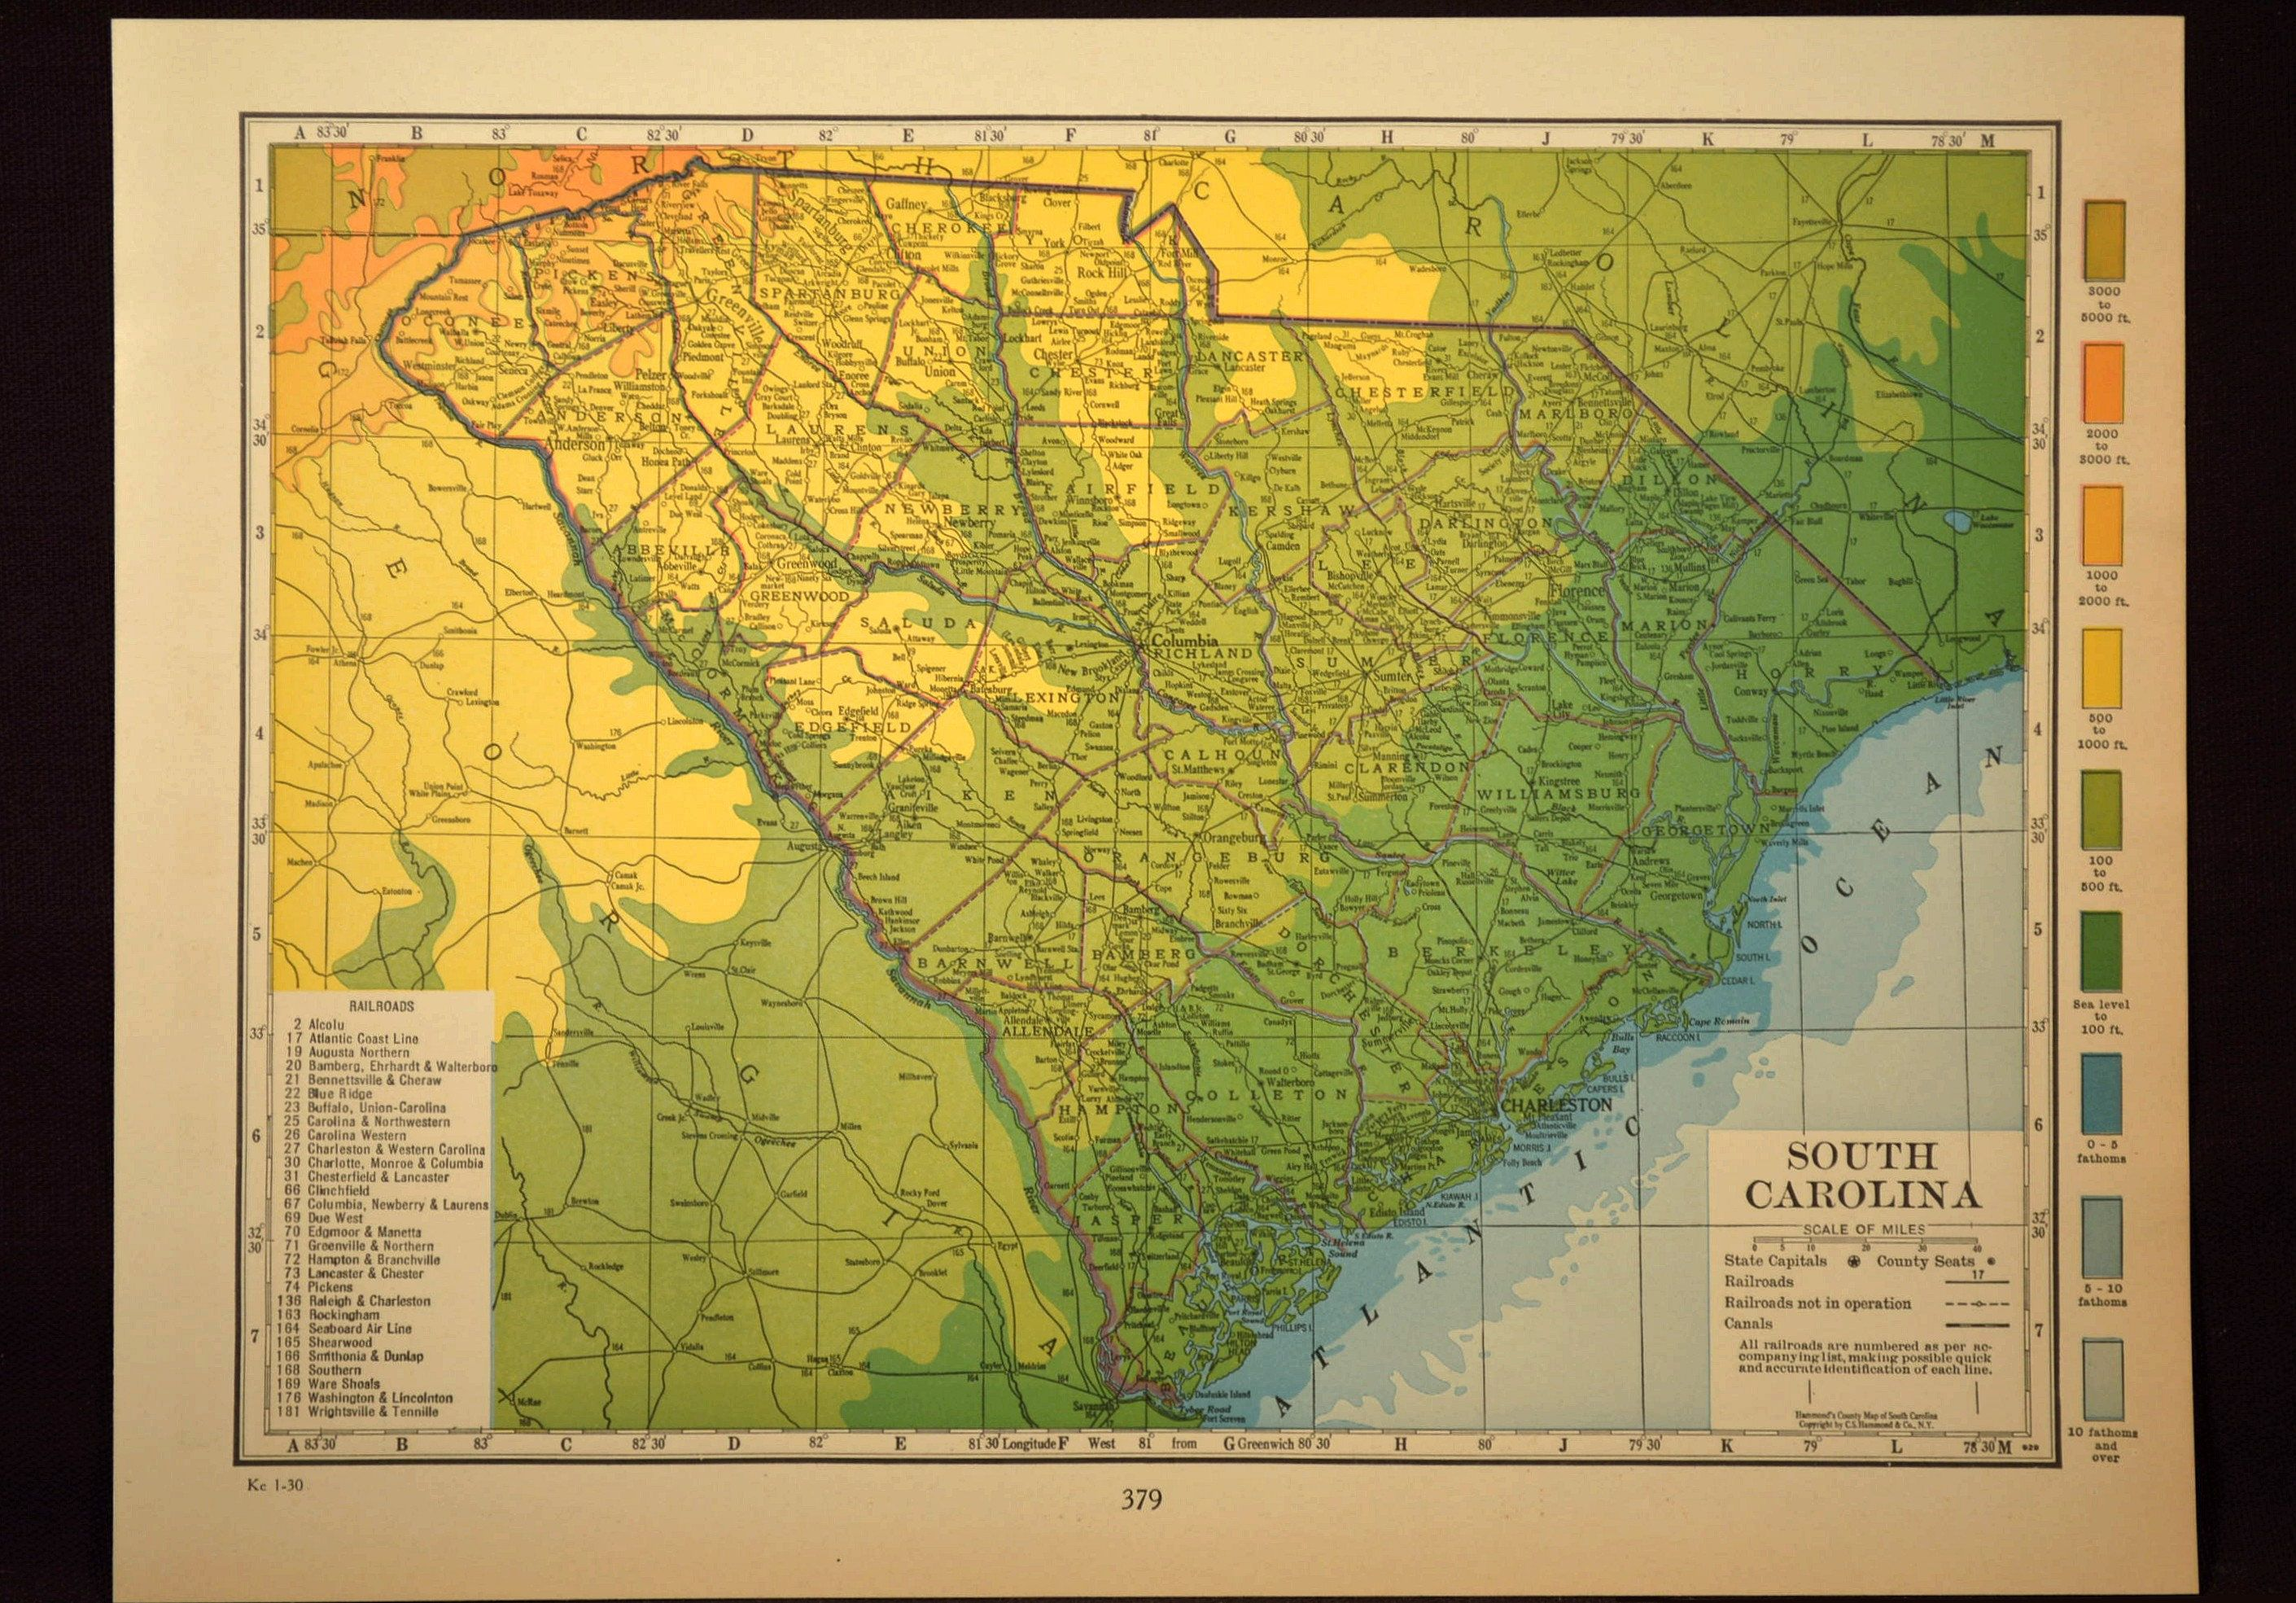 South Carolina Map of South Carolina Wall Art Decor Topographic Map ...